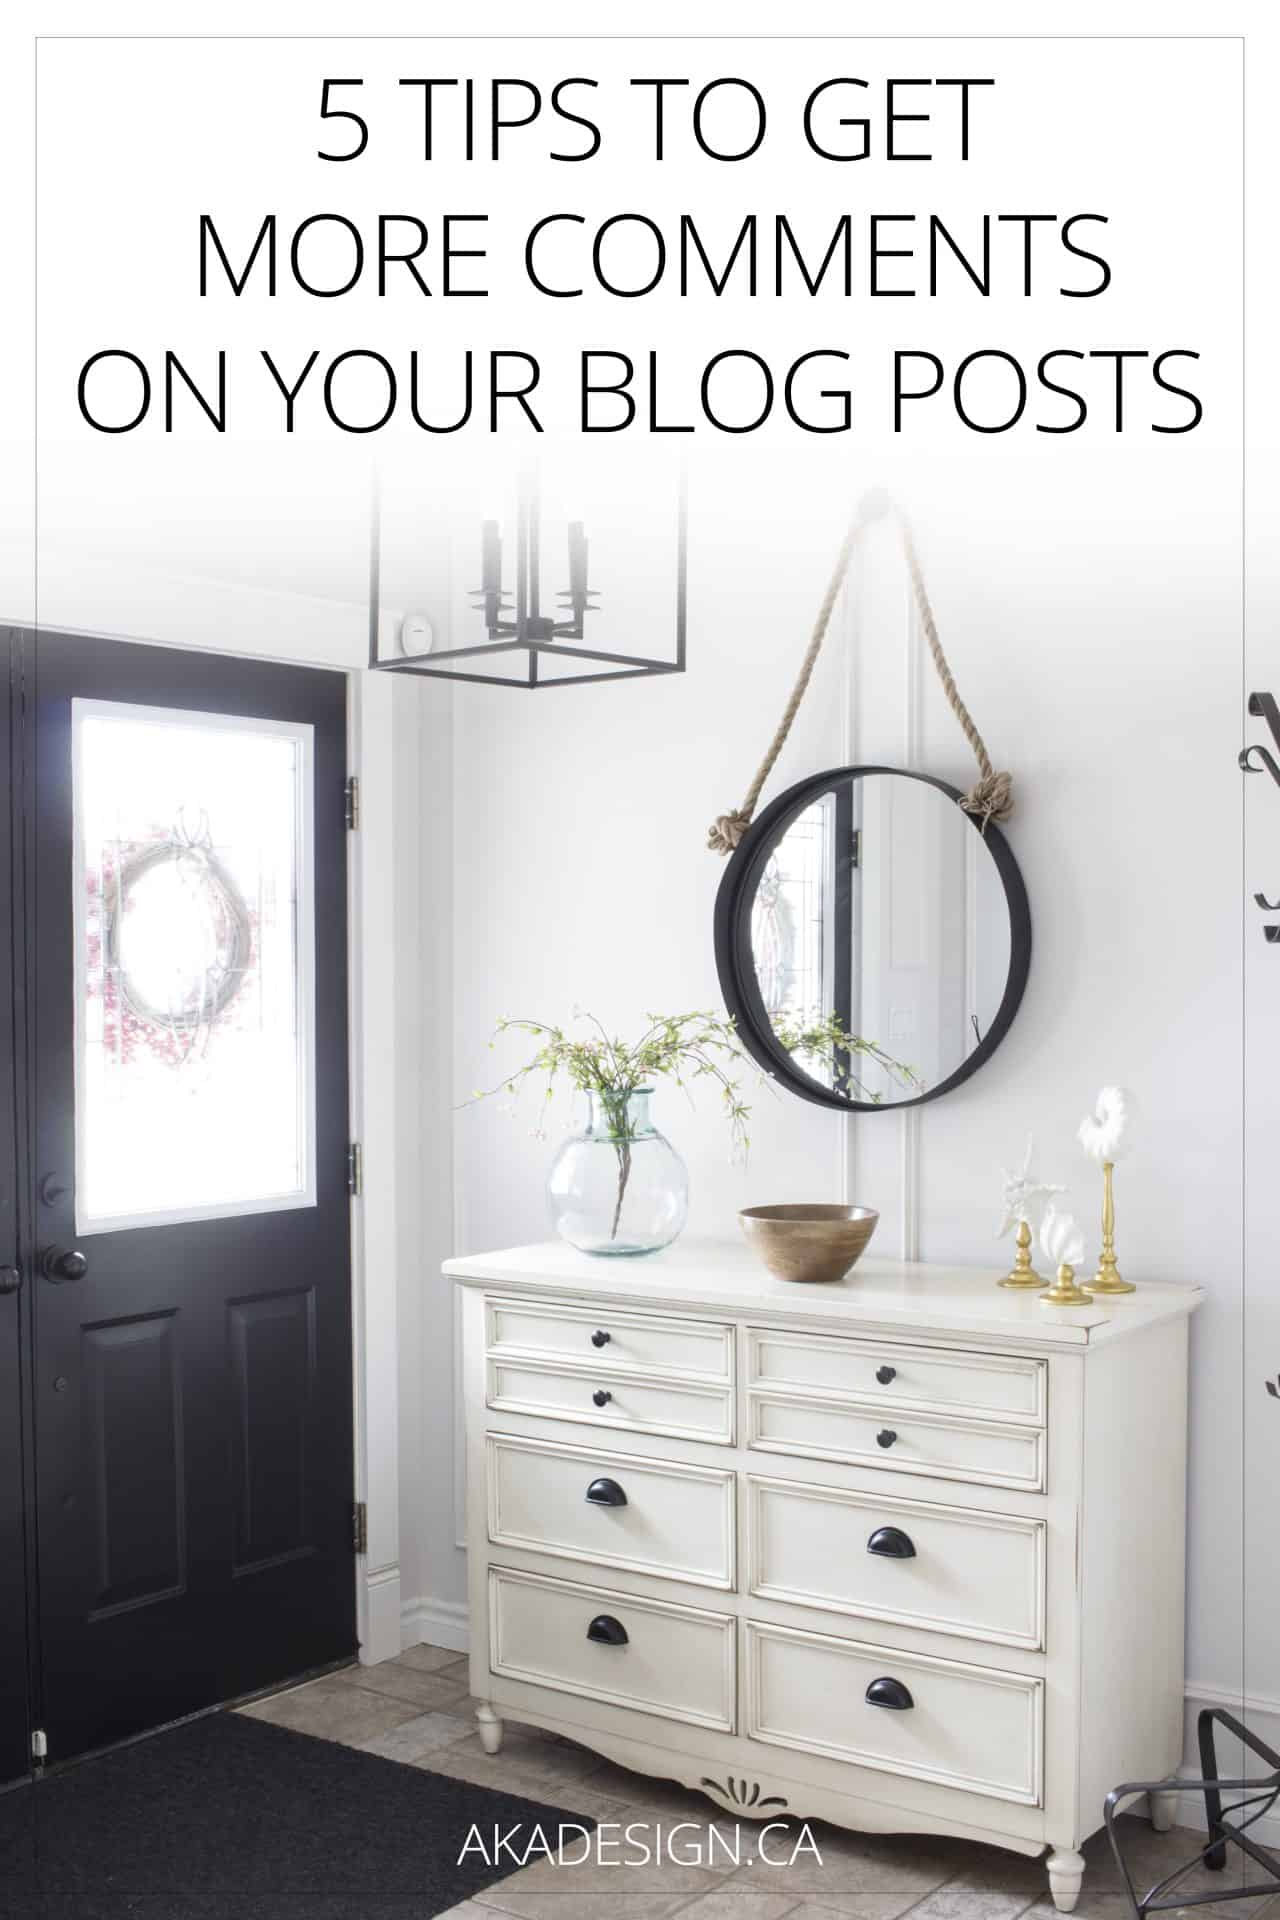 5 tips to get more comments on your blog posts